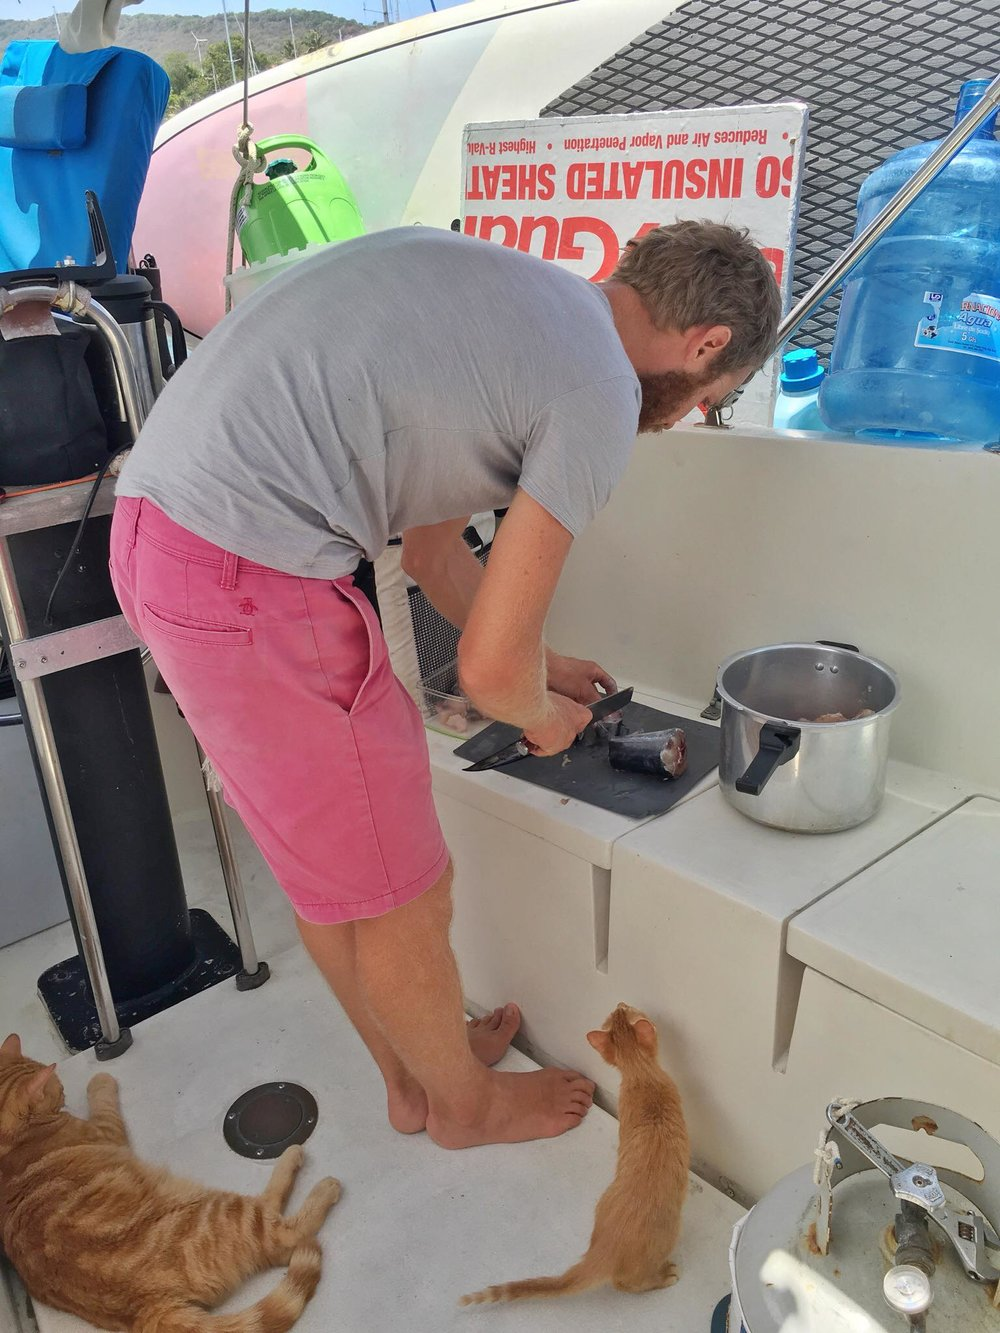 Liveaboard Life Day 171: Another beautiful day on the boat.. cooked Tamarind soup! ❤️